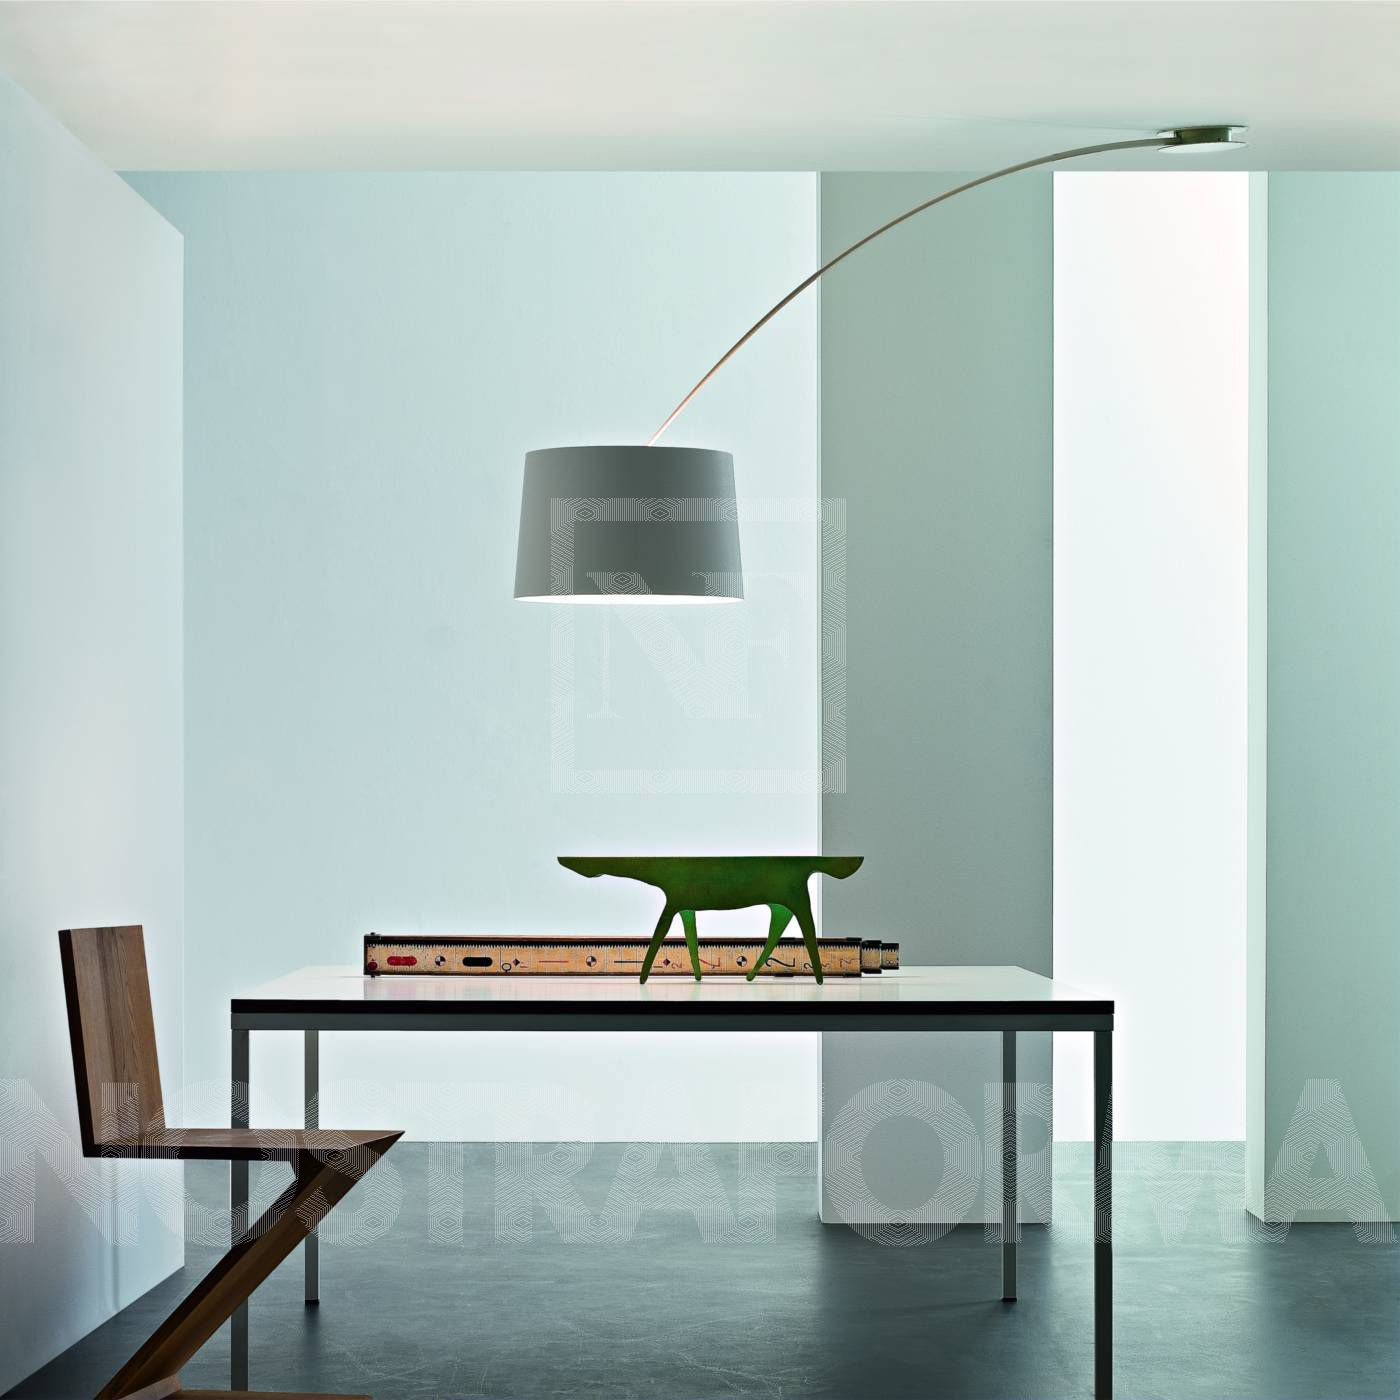 Luminaire Suspendu Table Cuisine Beautiful Luminaire Omega Design Yaacov Kaufman Par Lumina